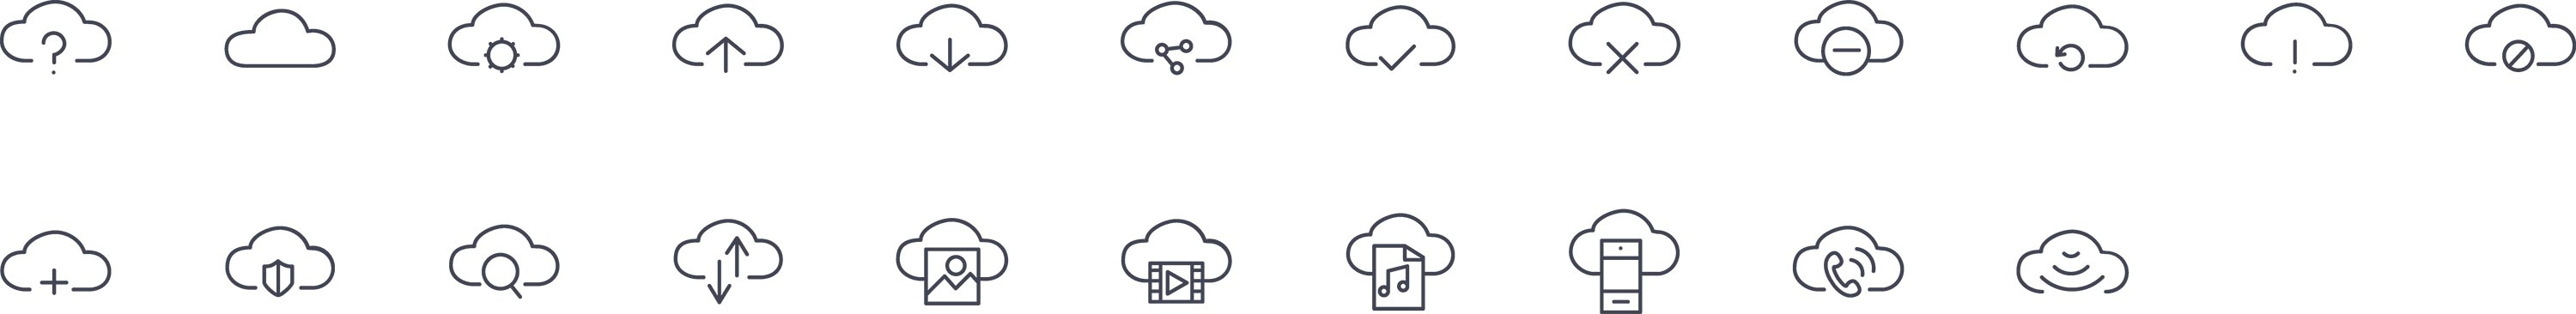 Clouds Line Icons